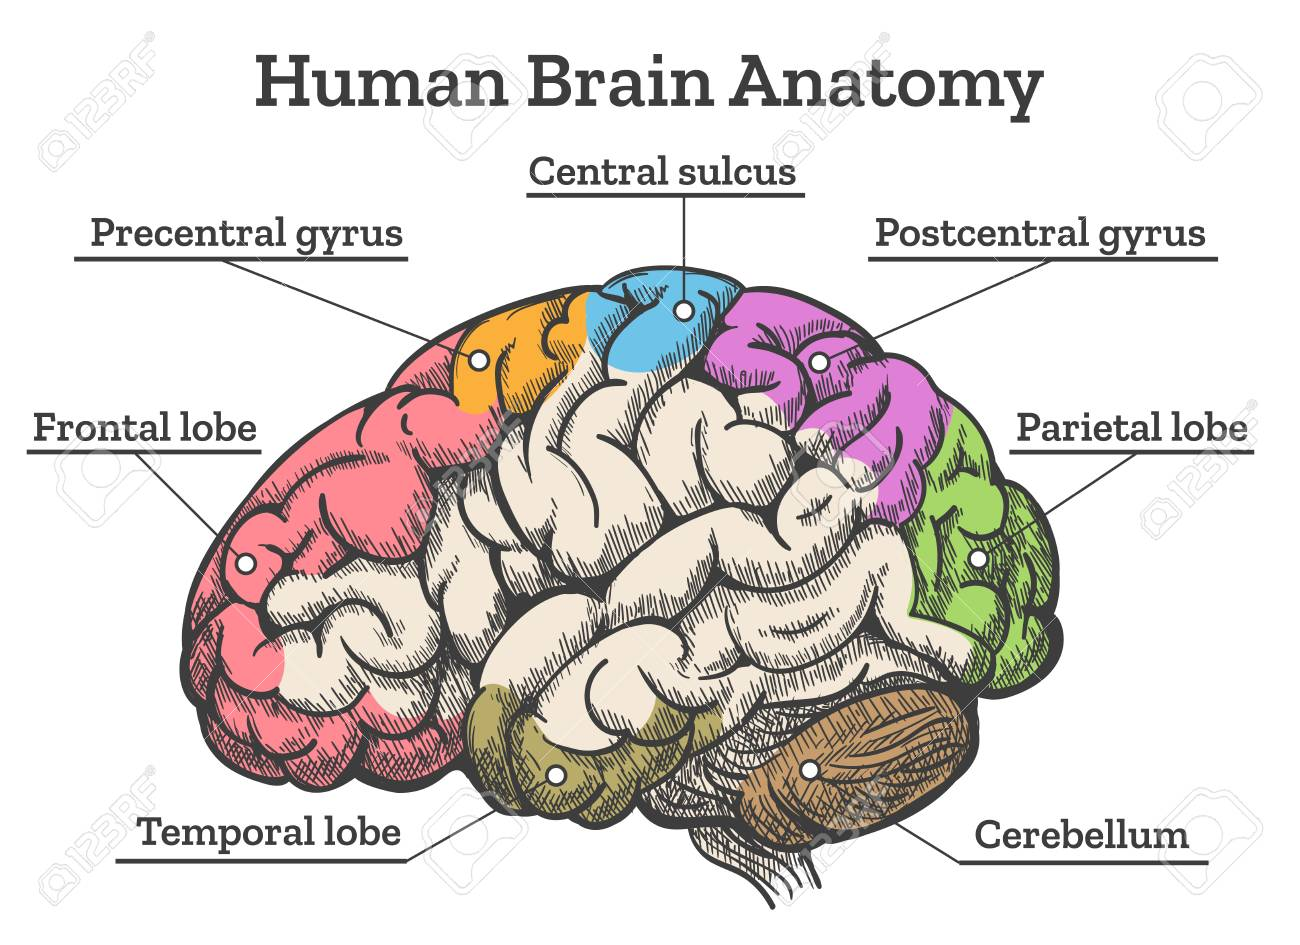 Human Brain Anatomy Diagram Sections Of Head Brain Vector